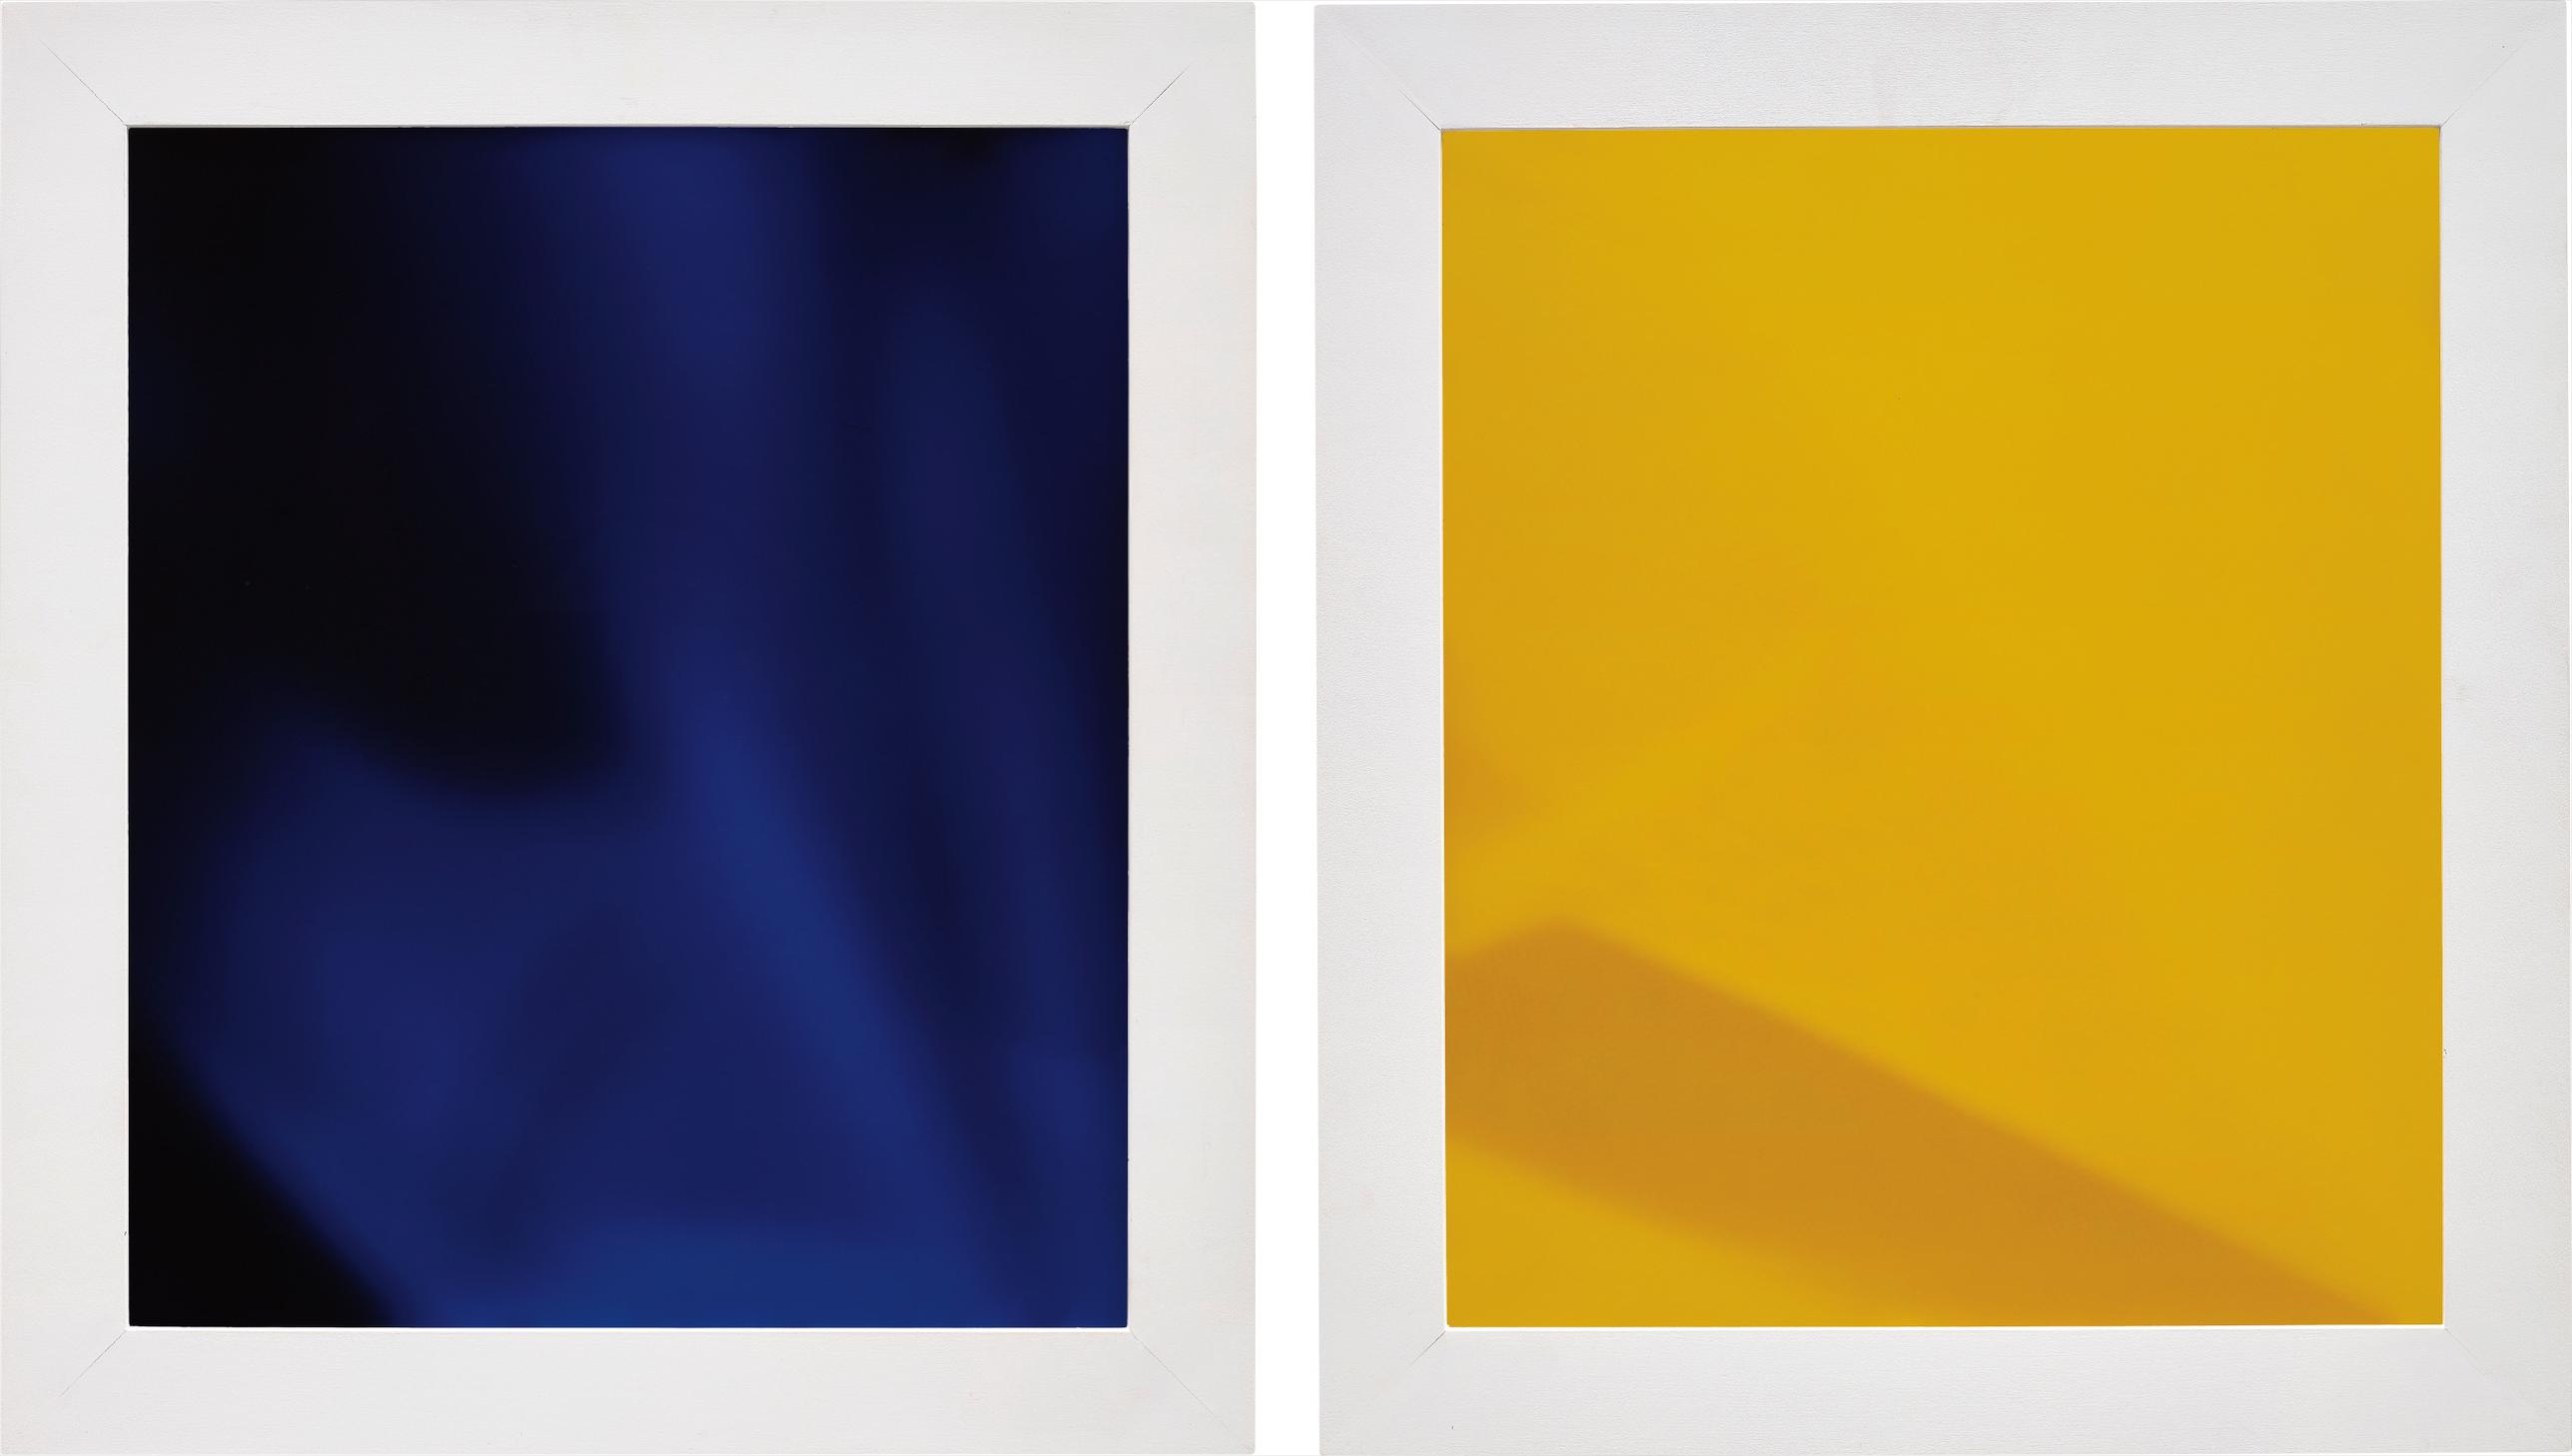 James Welling-Two Works: (i) Degrade Indv; (ii) Degrade Icyv-2003